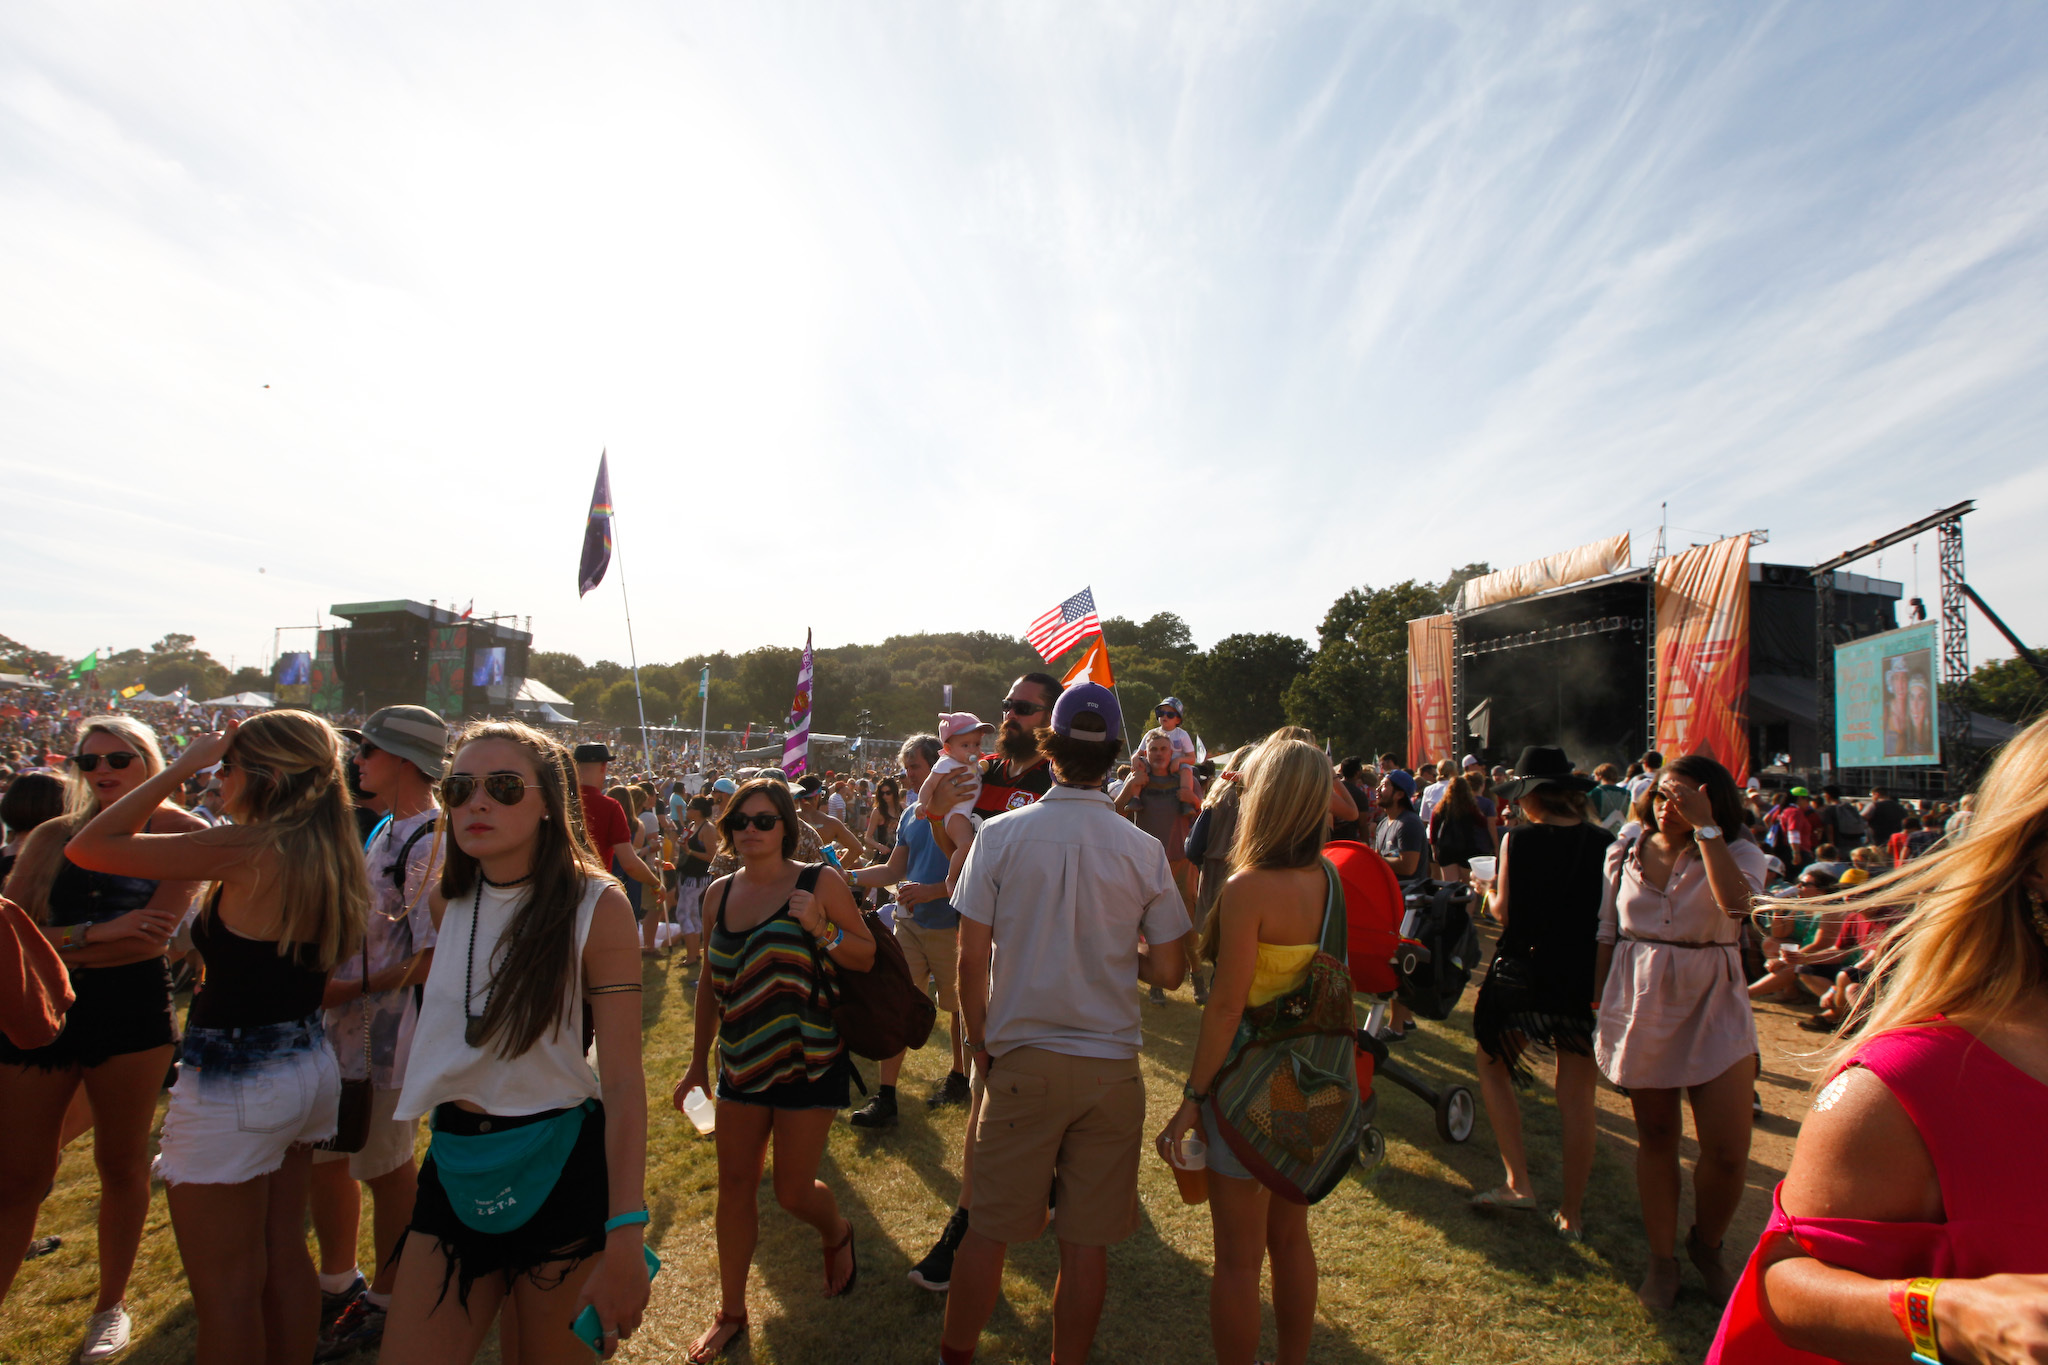 Crowds filled Zilker Park during the first weekend of Austin City Limits Music Festival 2015.